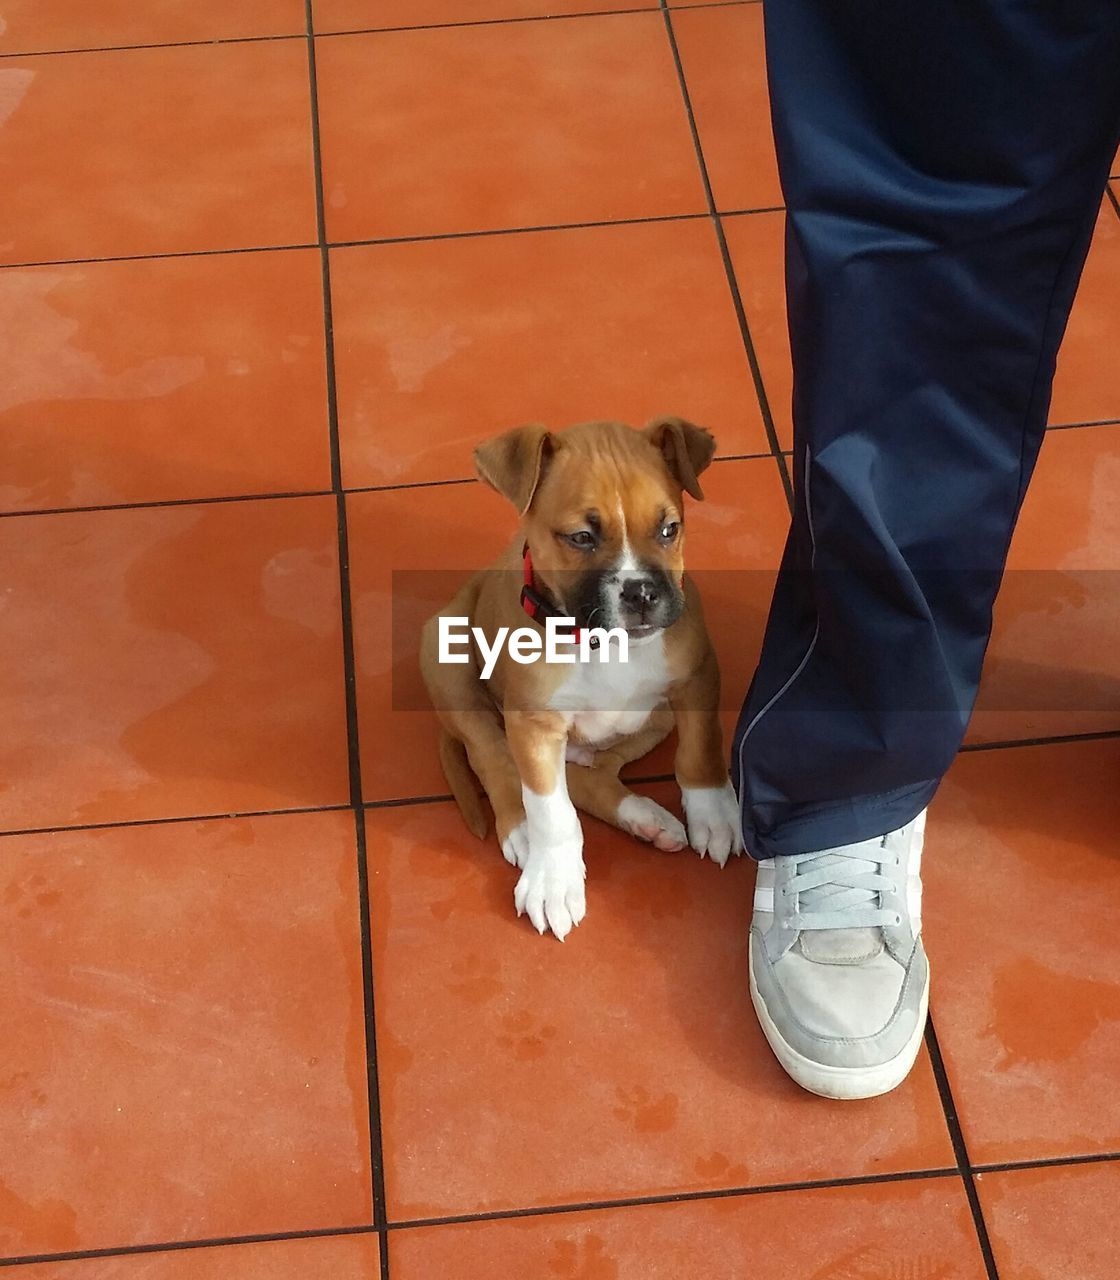 Low Section Of Man Standing By Puppy On Tiled Floor